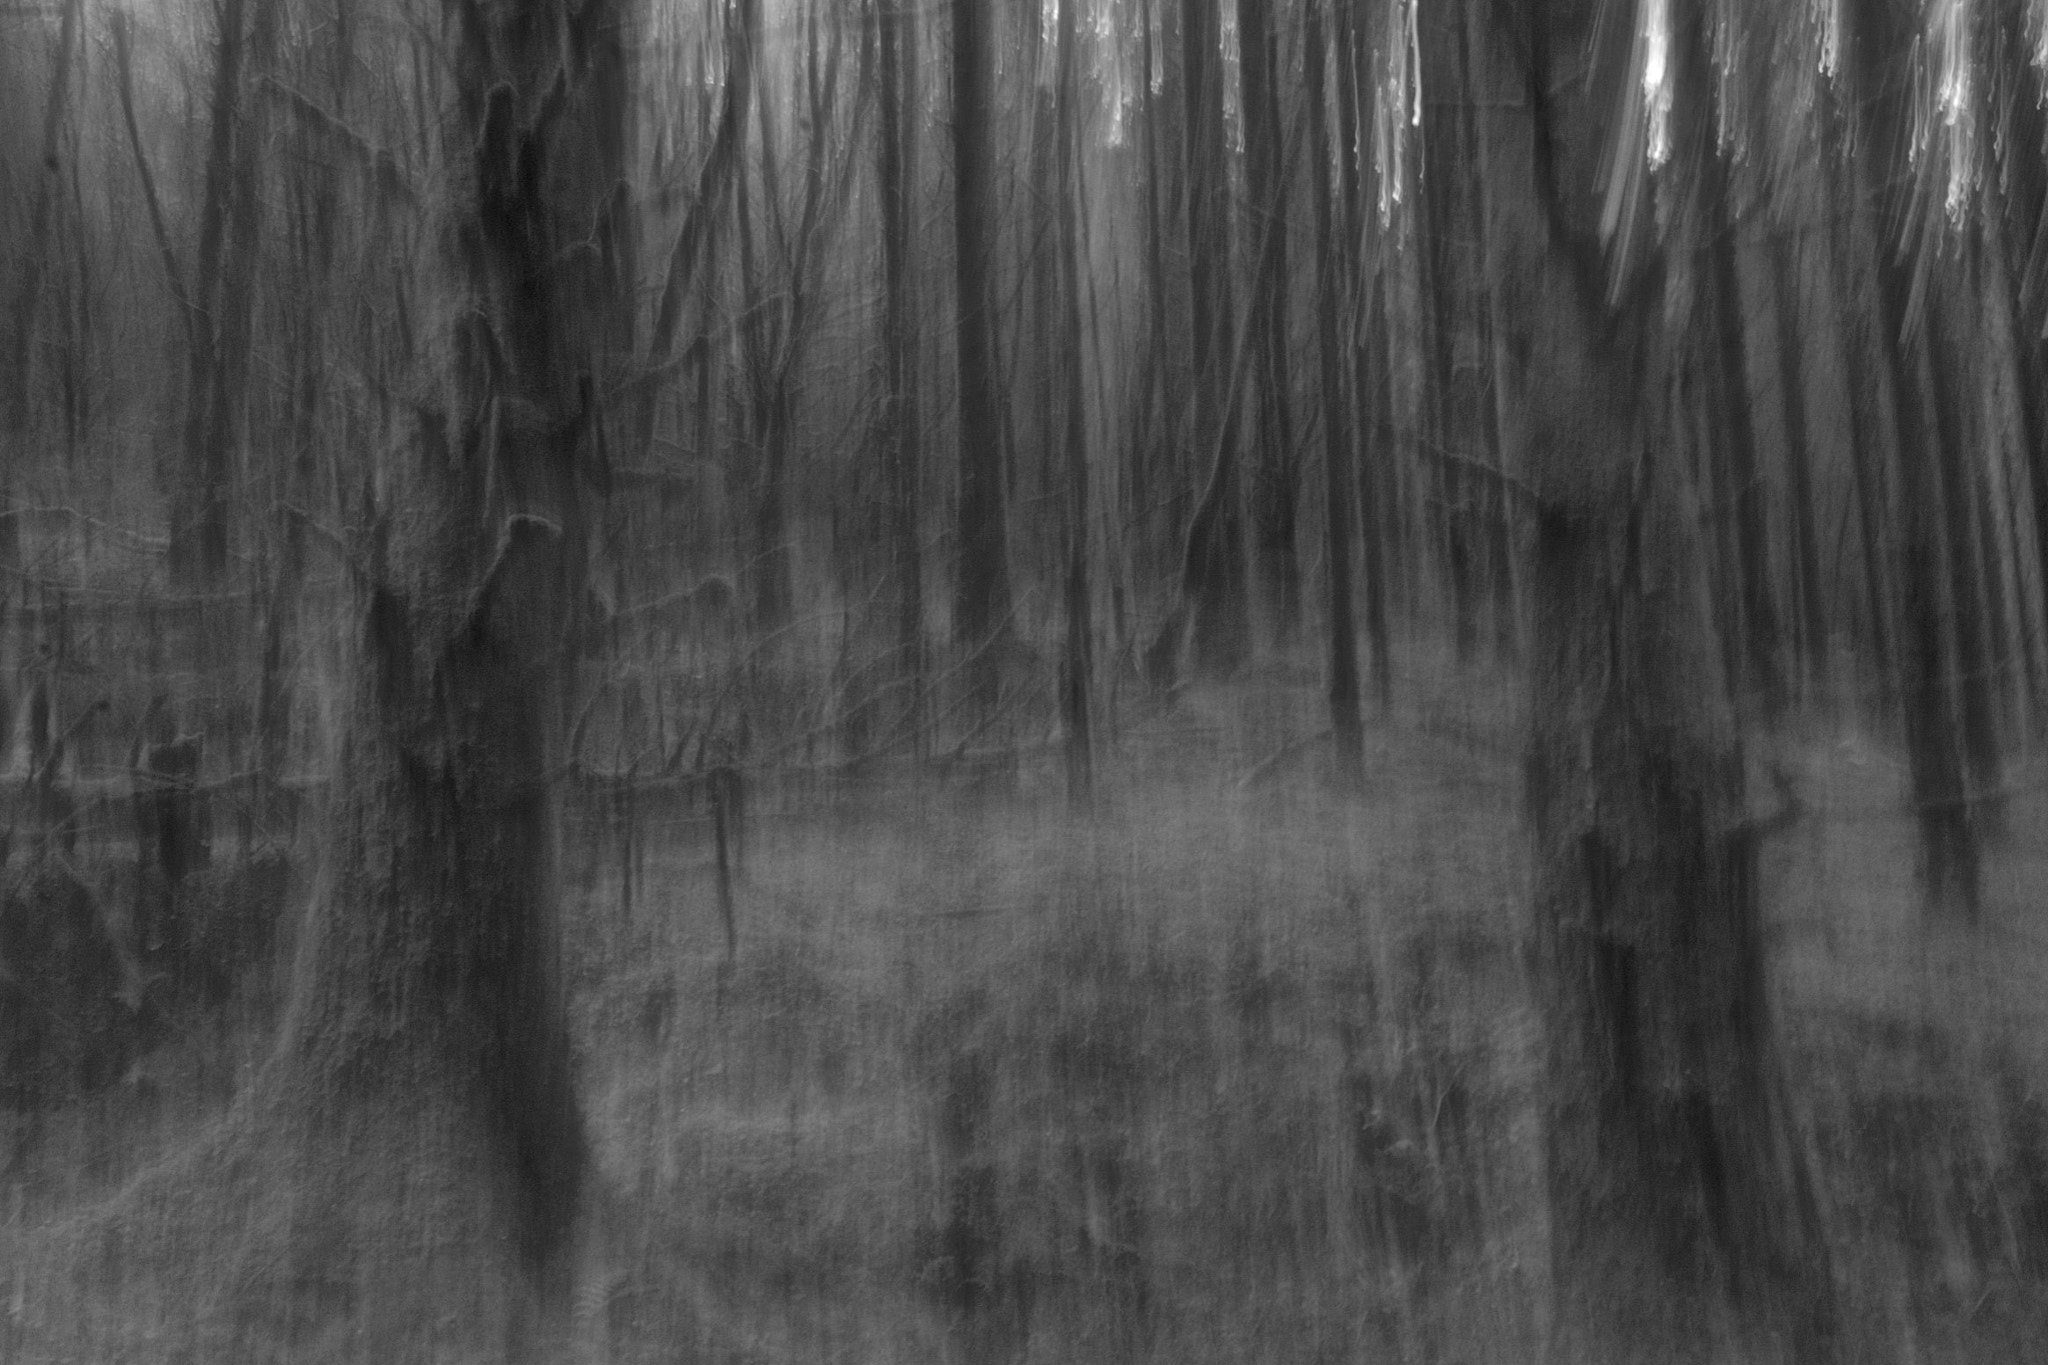 Photograph Into the woods by Craig MacLeod on 500px